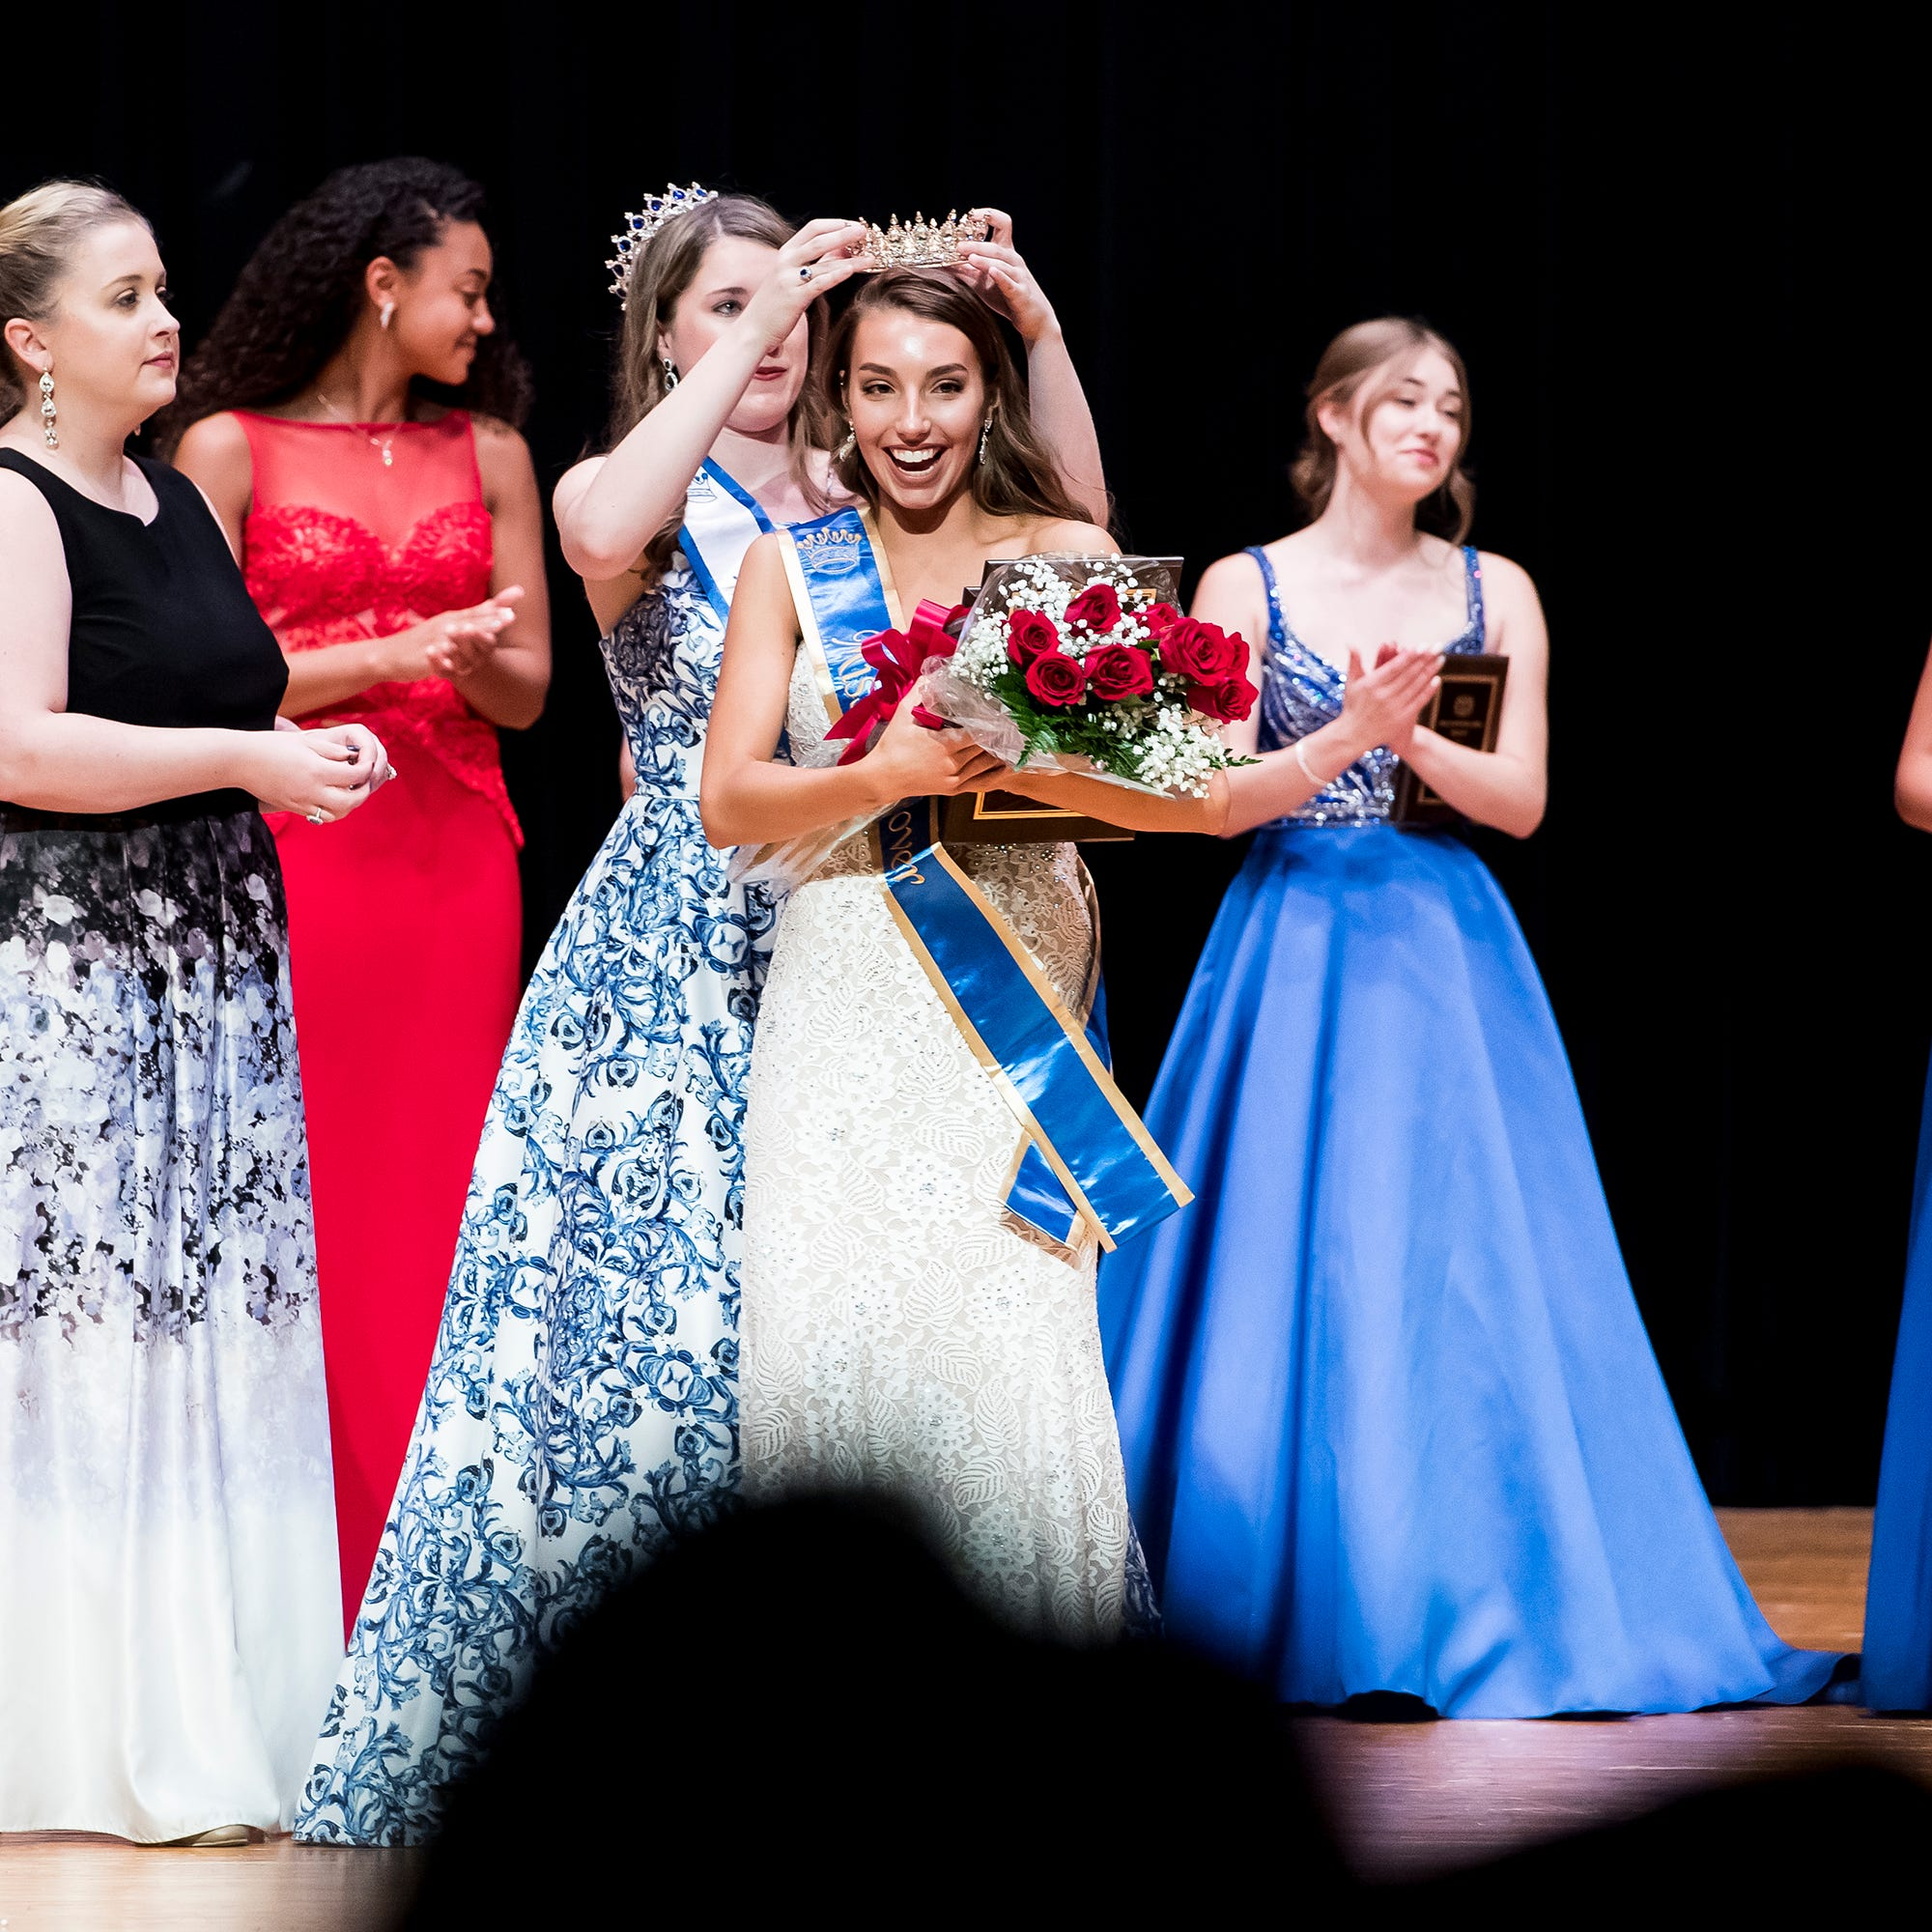 South Western's Madlyn Farley is crowned the 50th Miss Hanover Area on Monday, October 22, 2018.